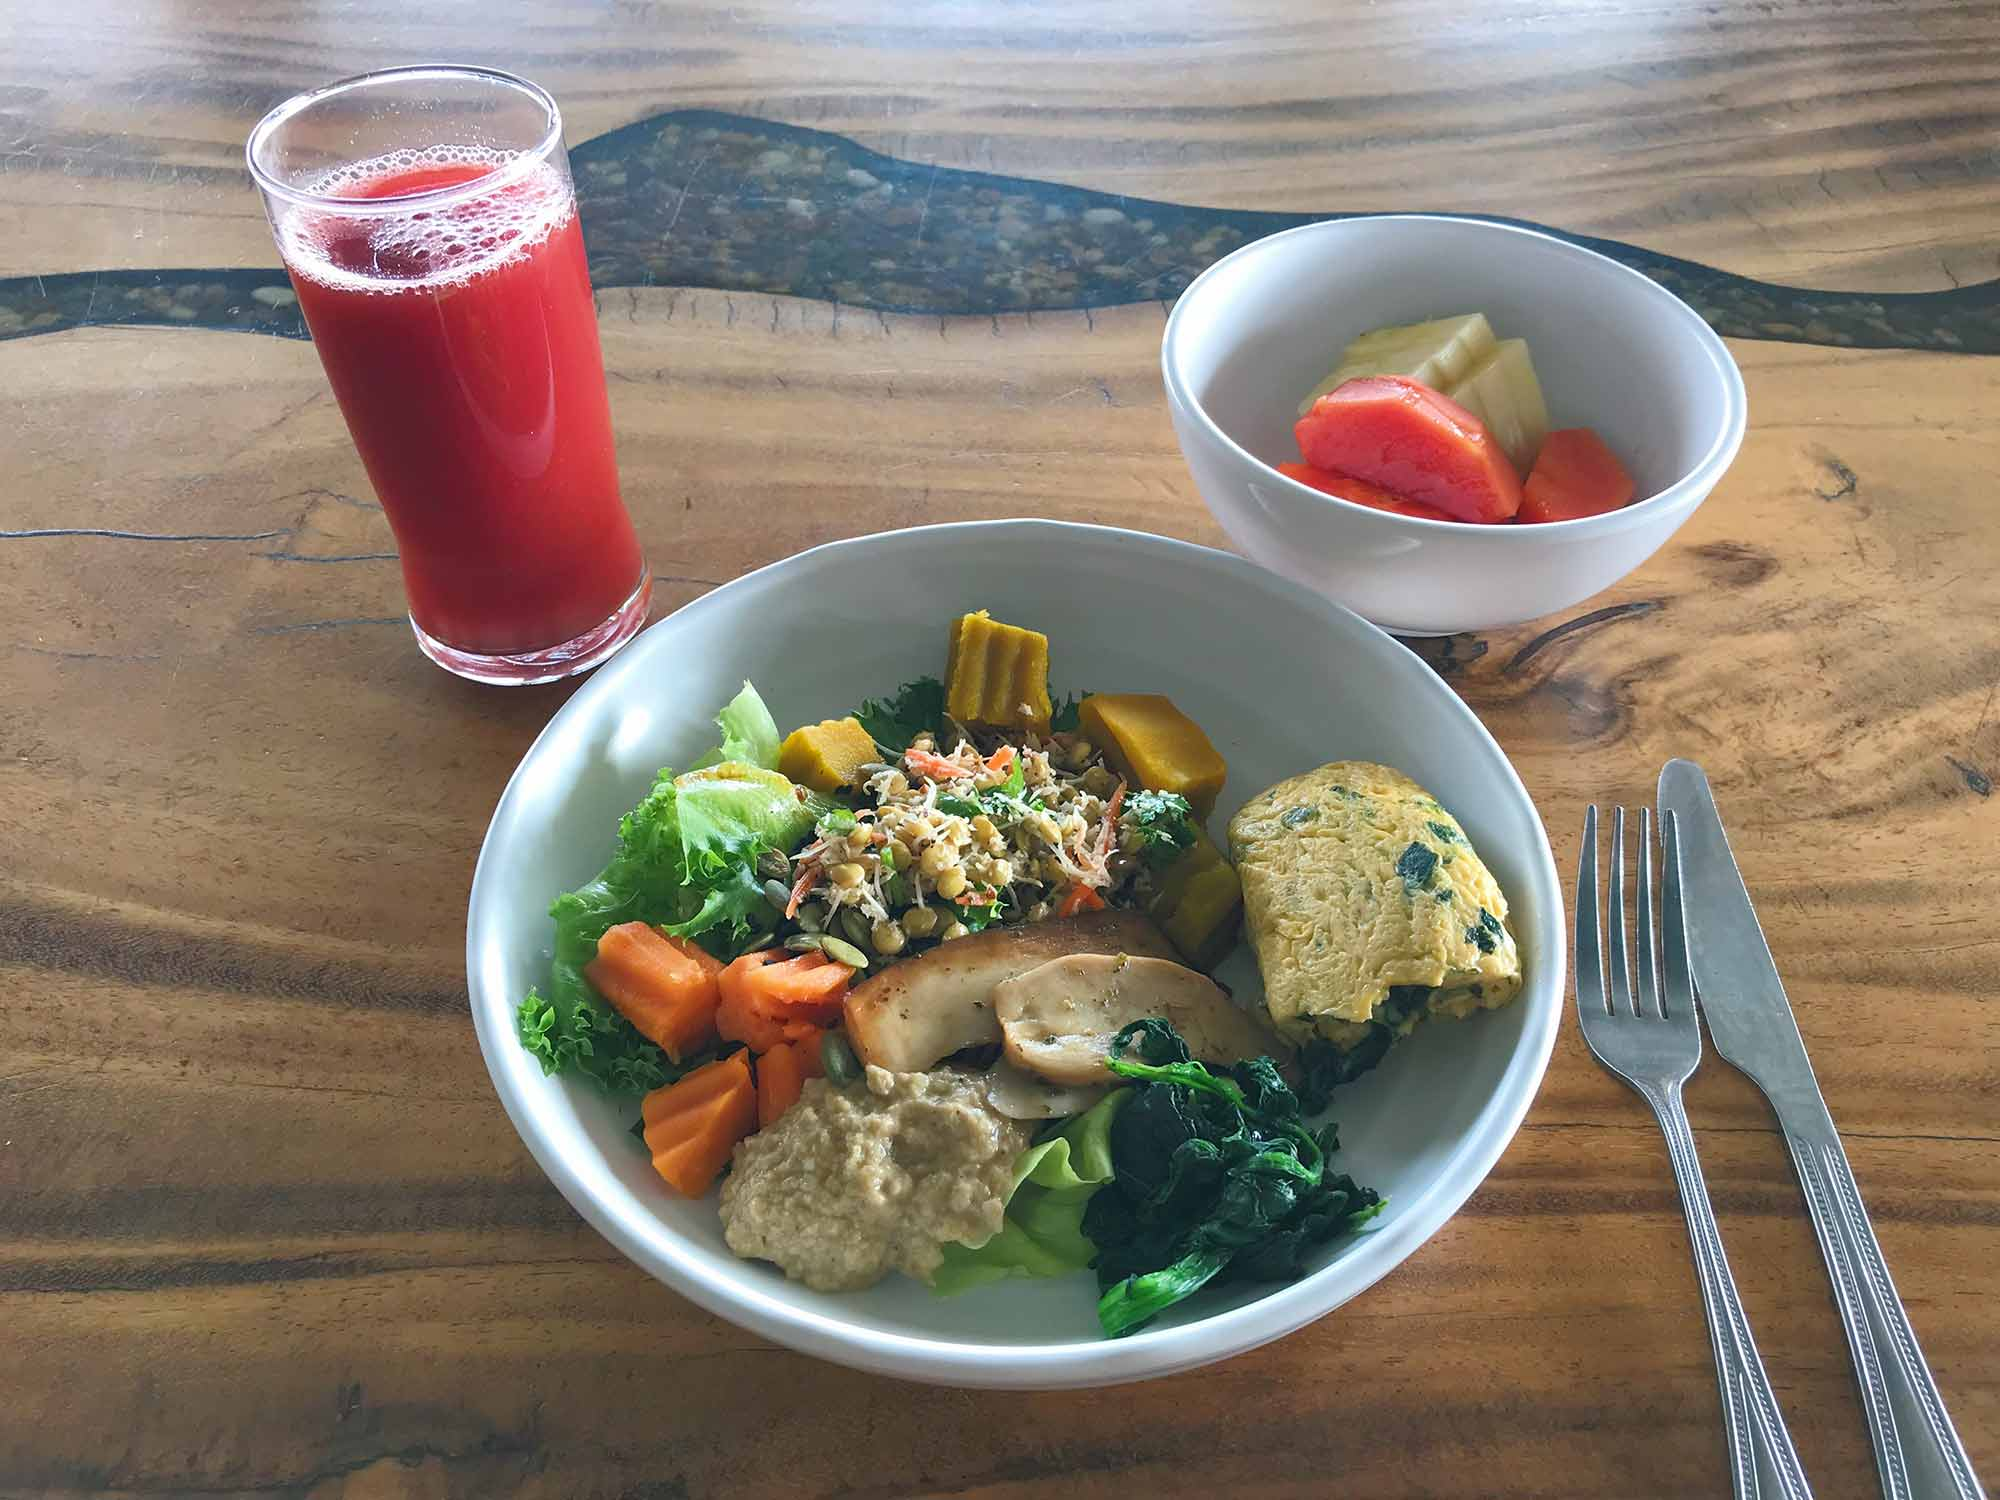 Breakfast salad of mung beans, oyster mushrooms, veggie dip, sweet potatoes, and spinach. A side of veggie omelet, fresh fruit, and beetroot ginger juice.